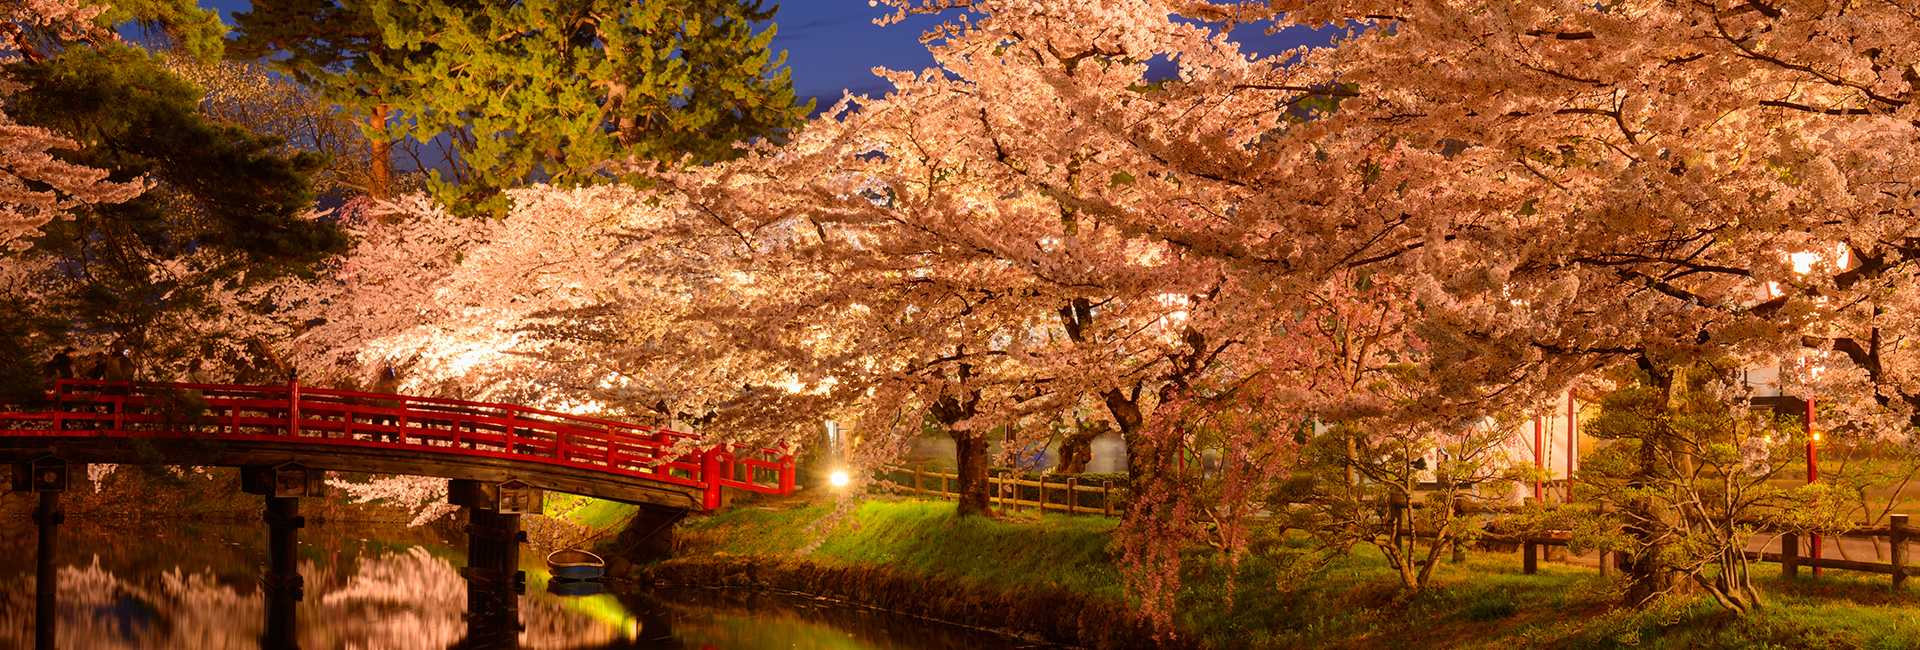 Hirosaki at night and cherry blossoms